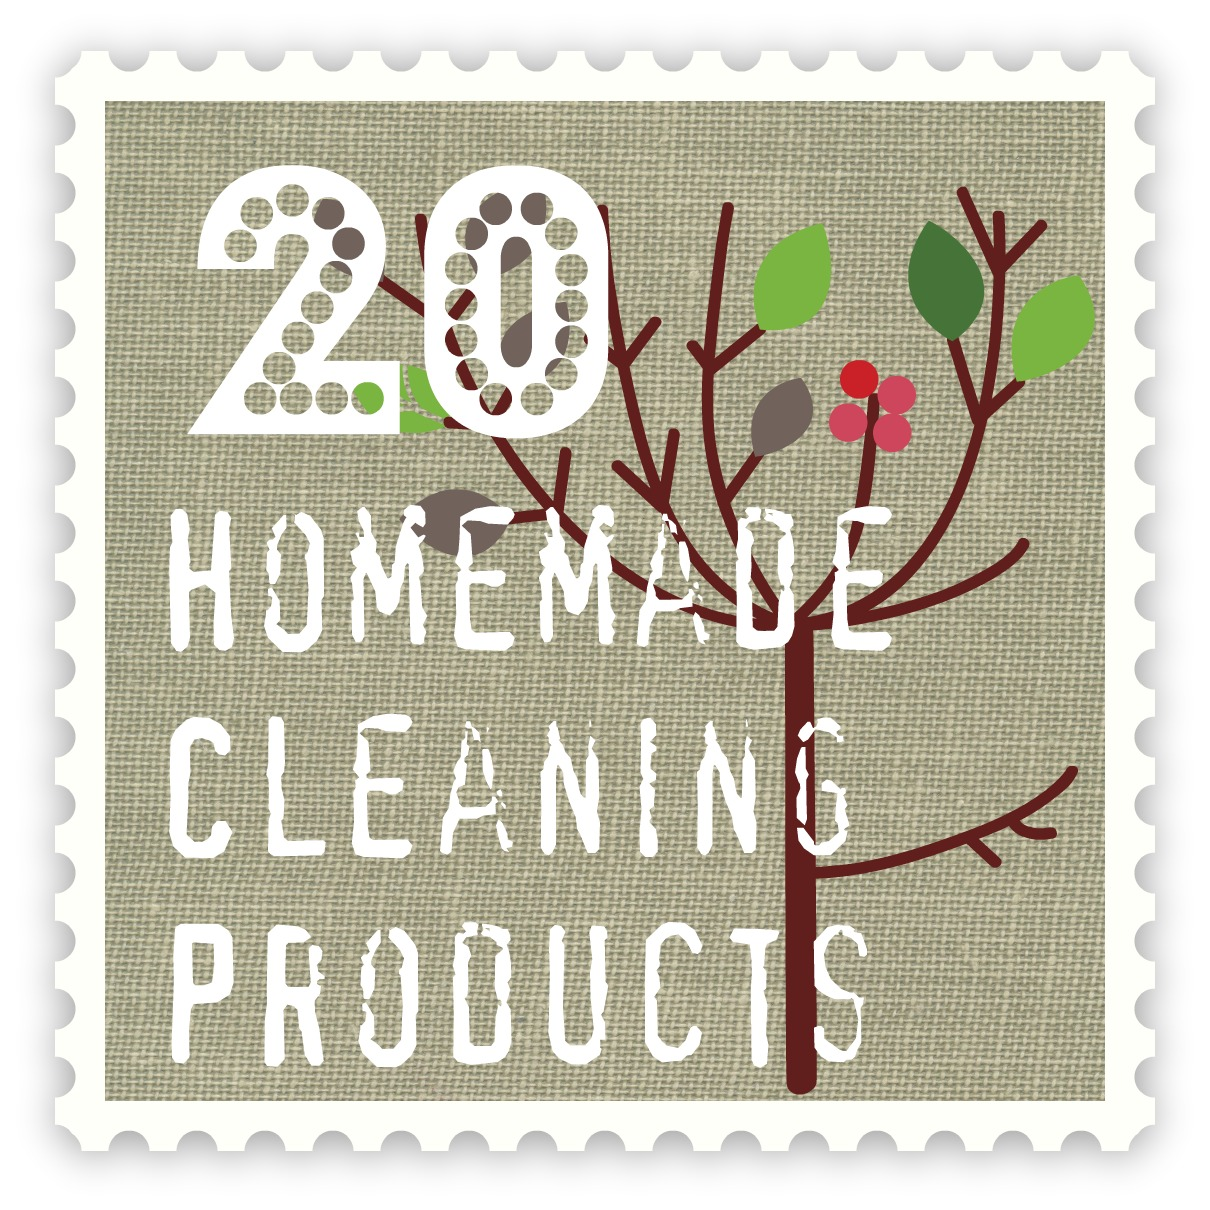 In my own quest to find simple recipes for homemade cleaning products